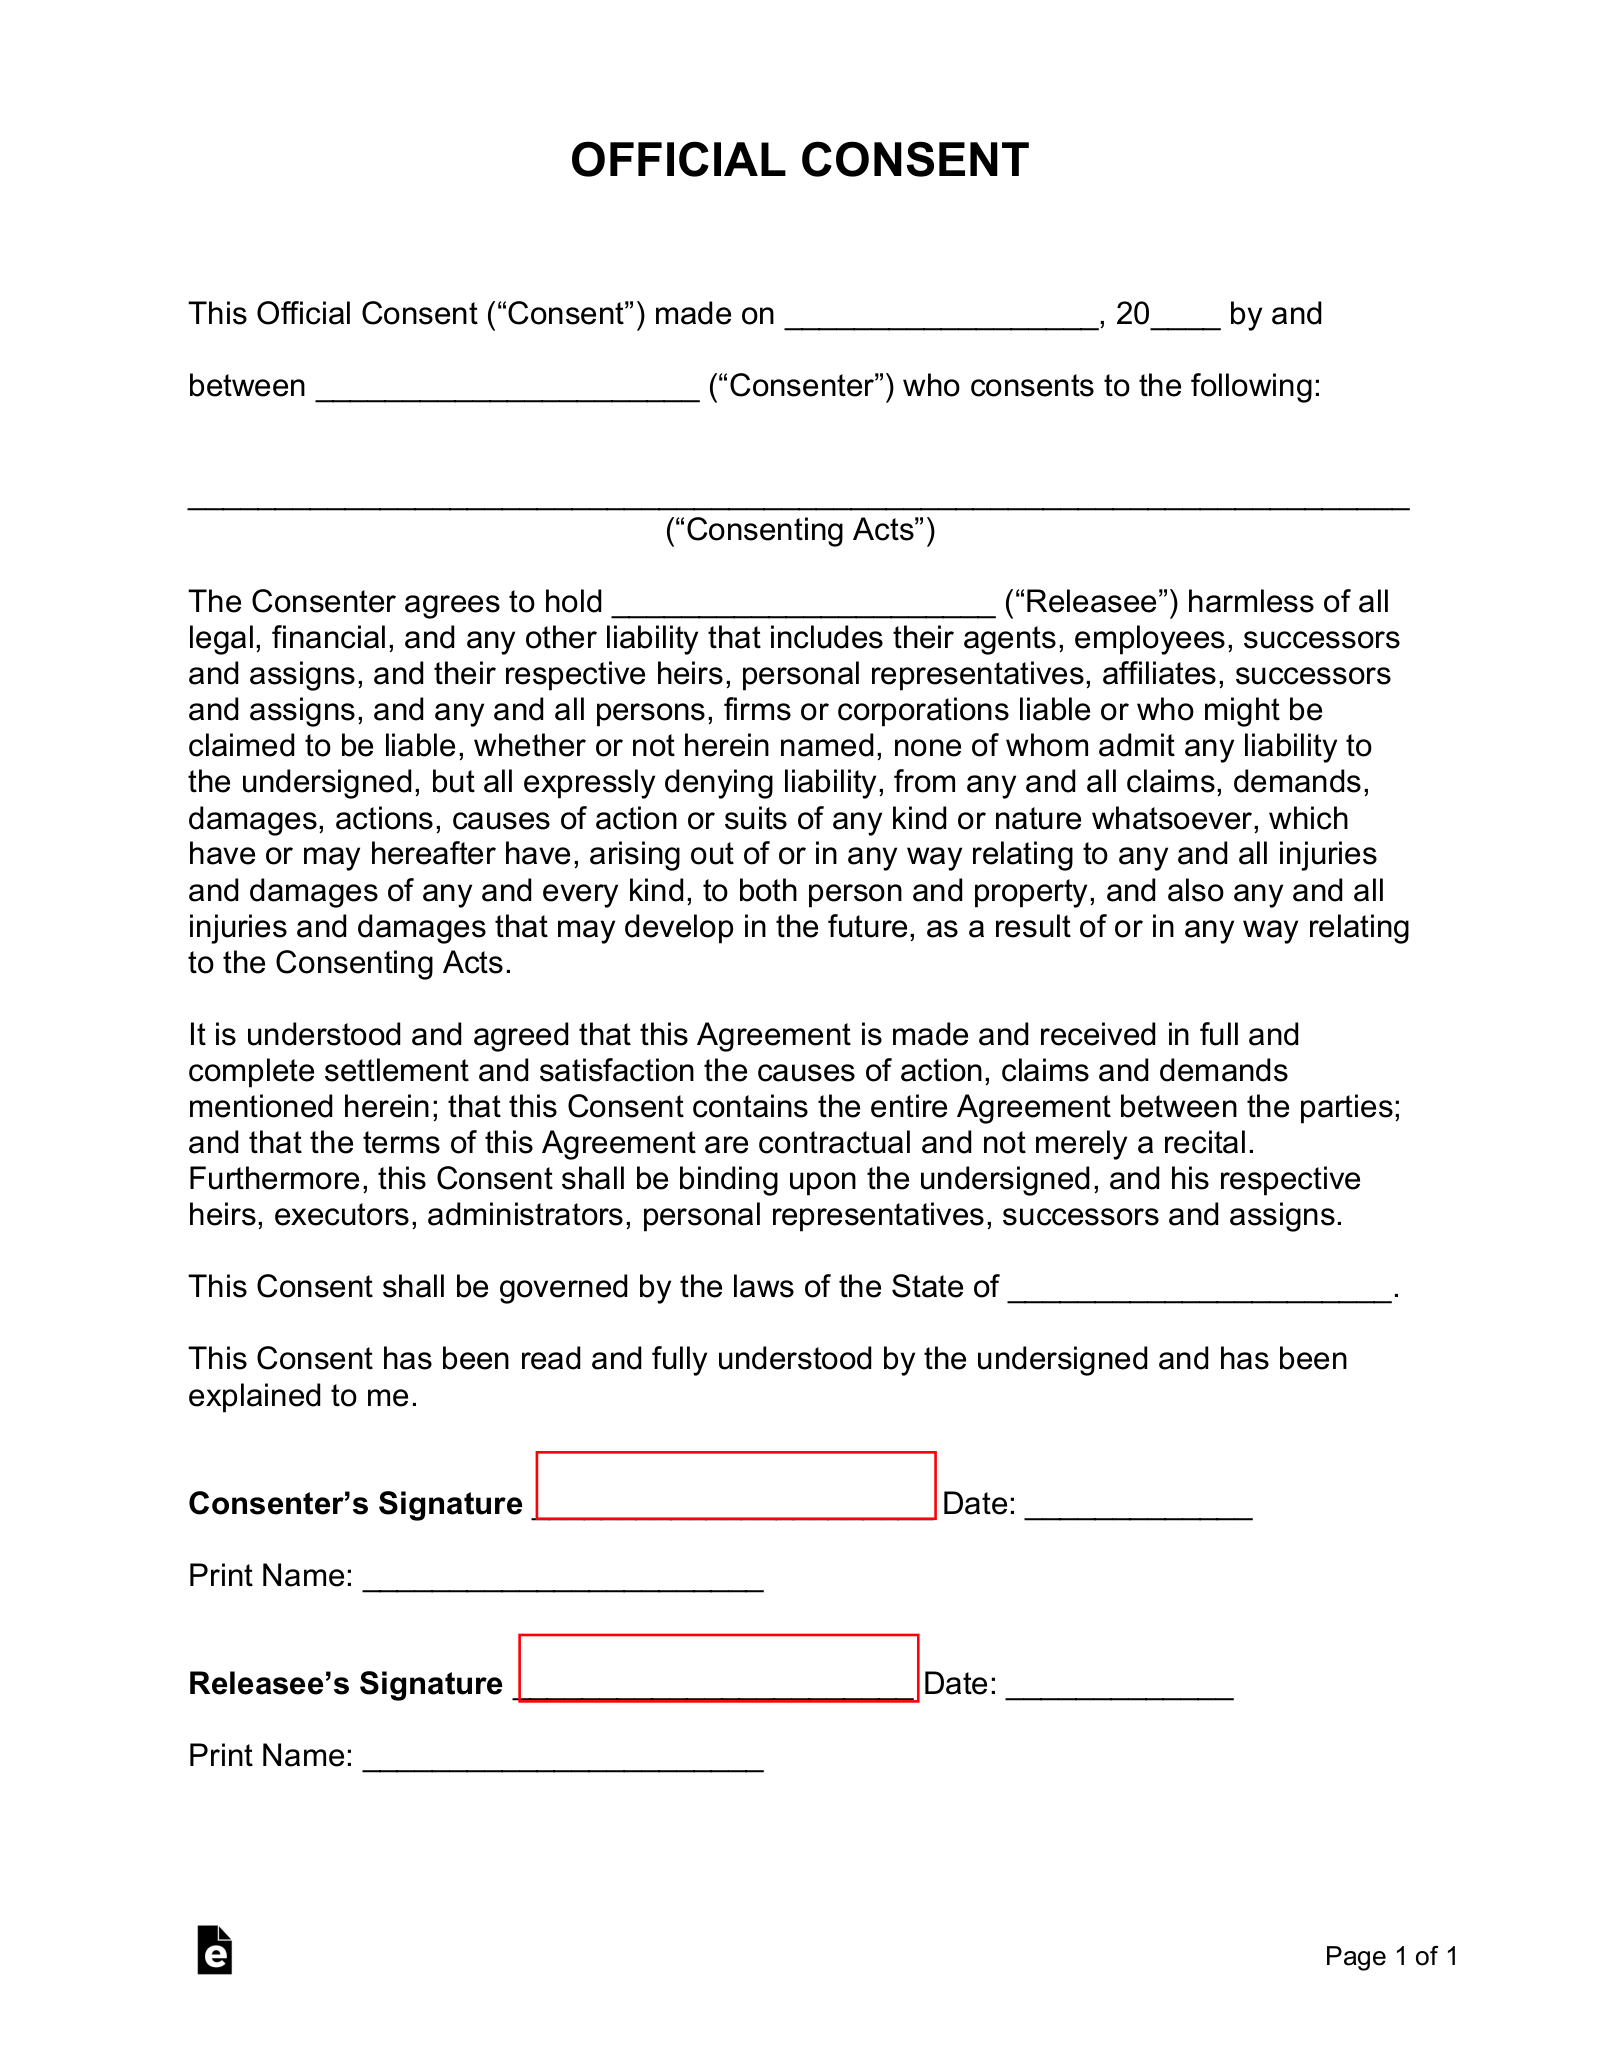 Free Consent Form Template   Sample   PDF   Word – eForms